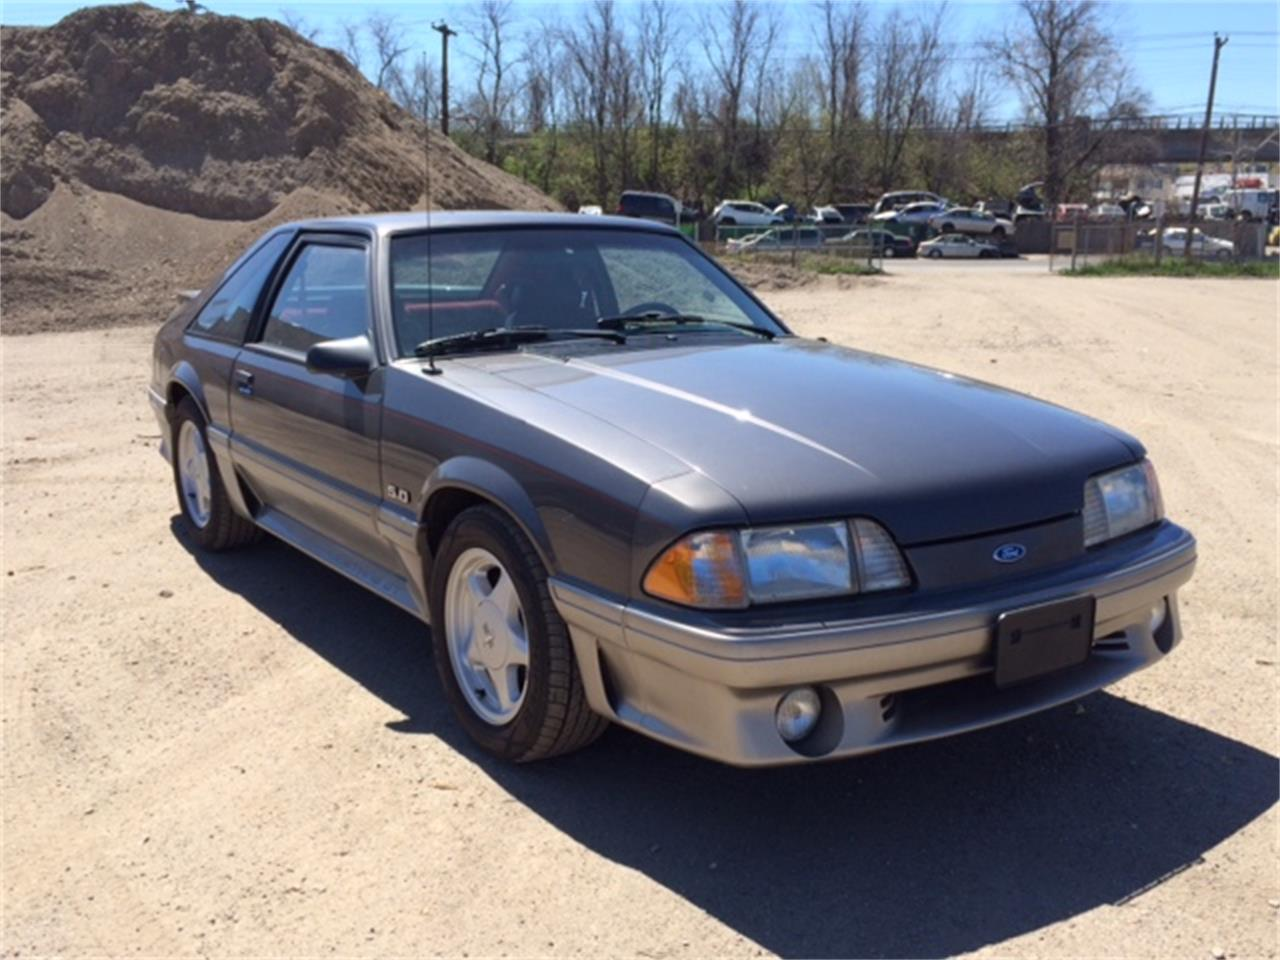 1991 Ford Mustang #22